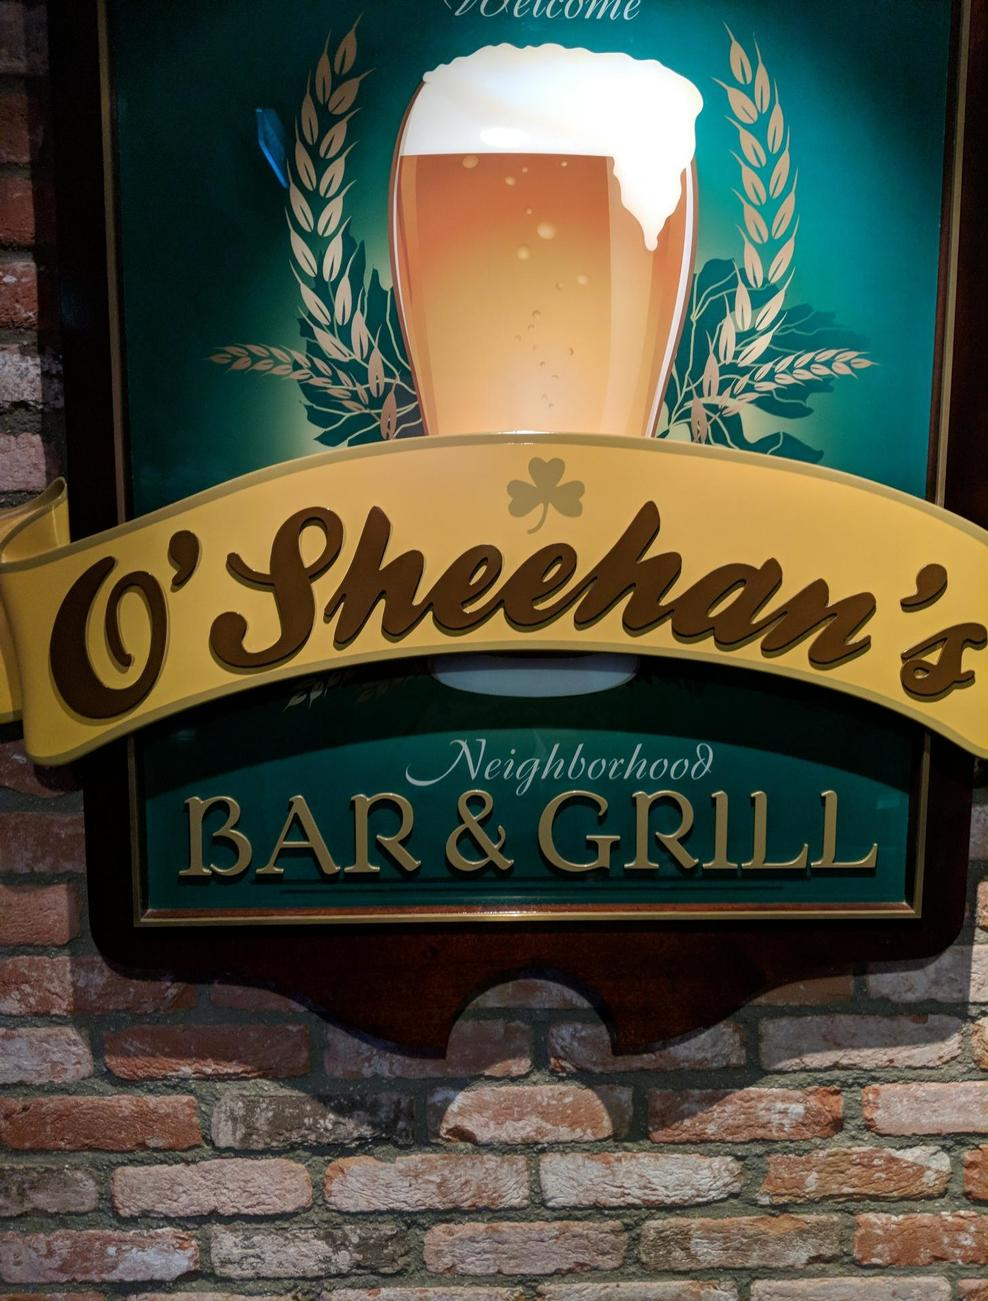 O'Sheehan's 24 hour rest and bar